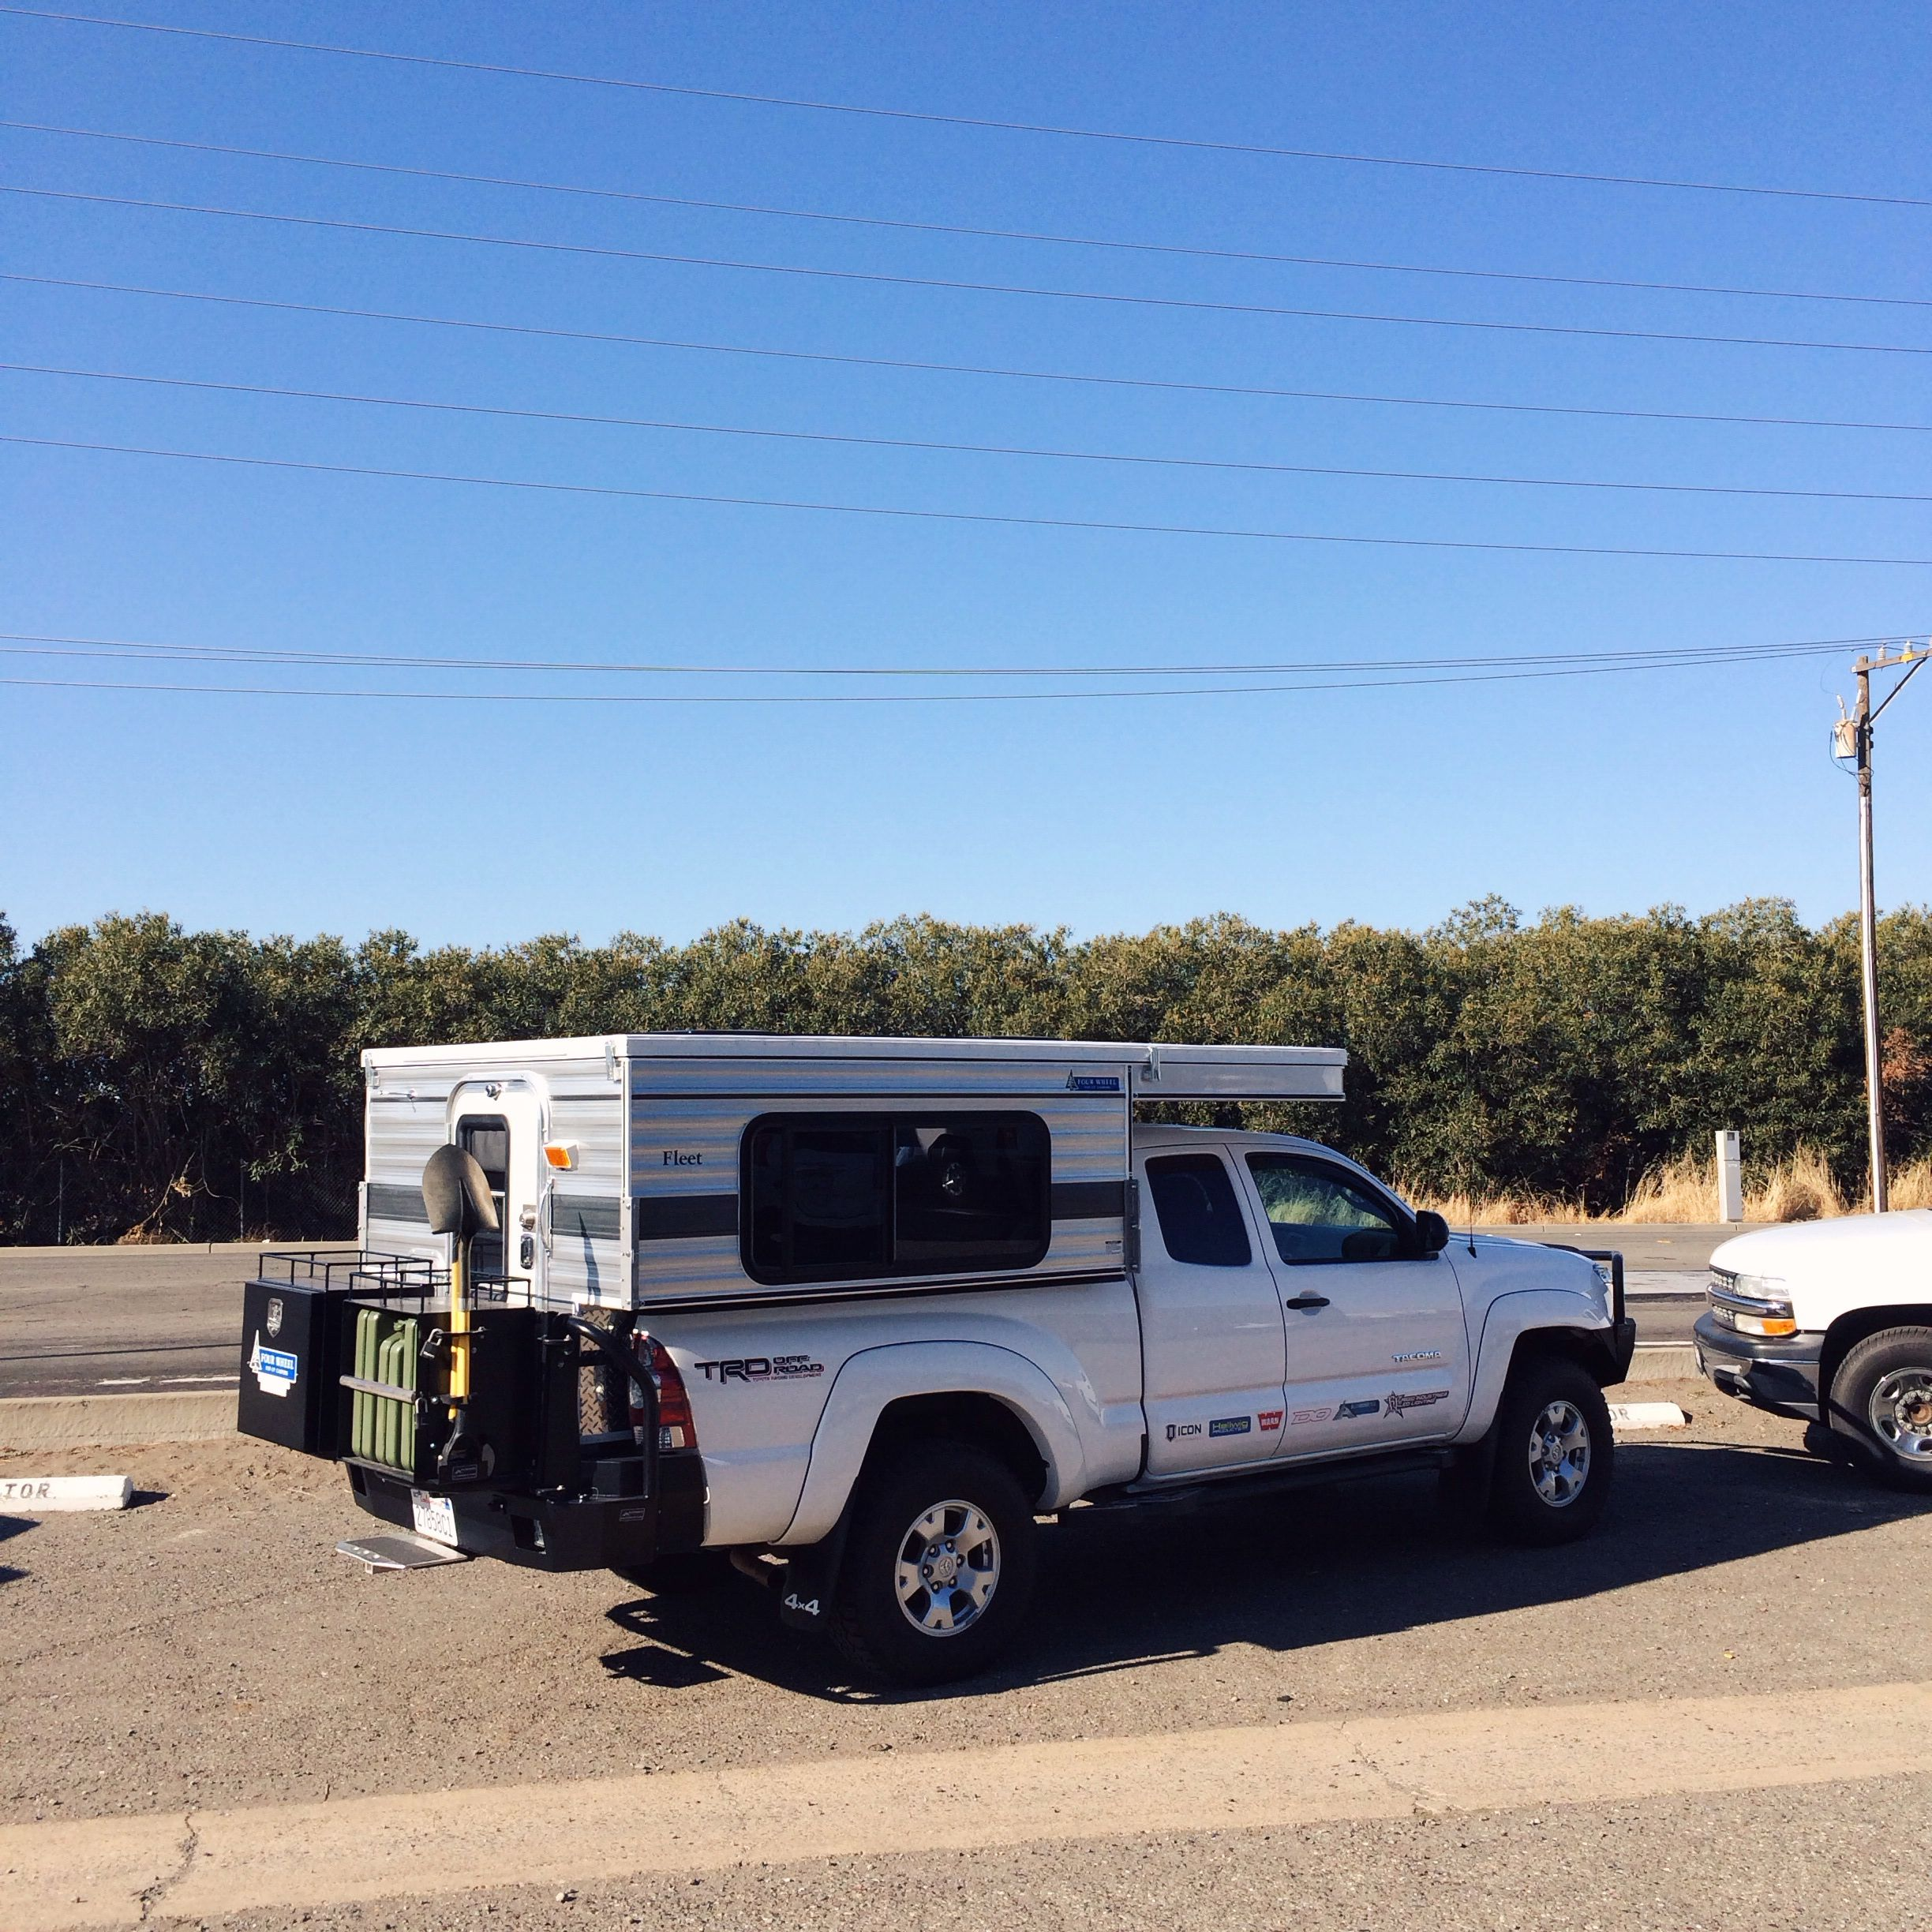 Four Wheel Camper >> Toyota Tacoma With A Four Wheel Camper Fleet Ships Of The